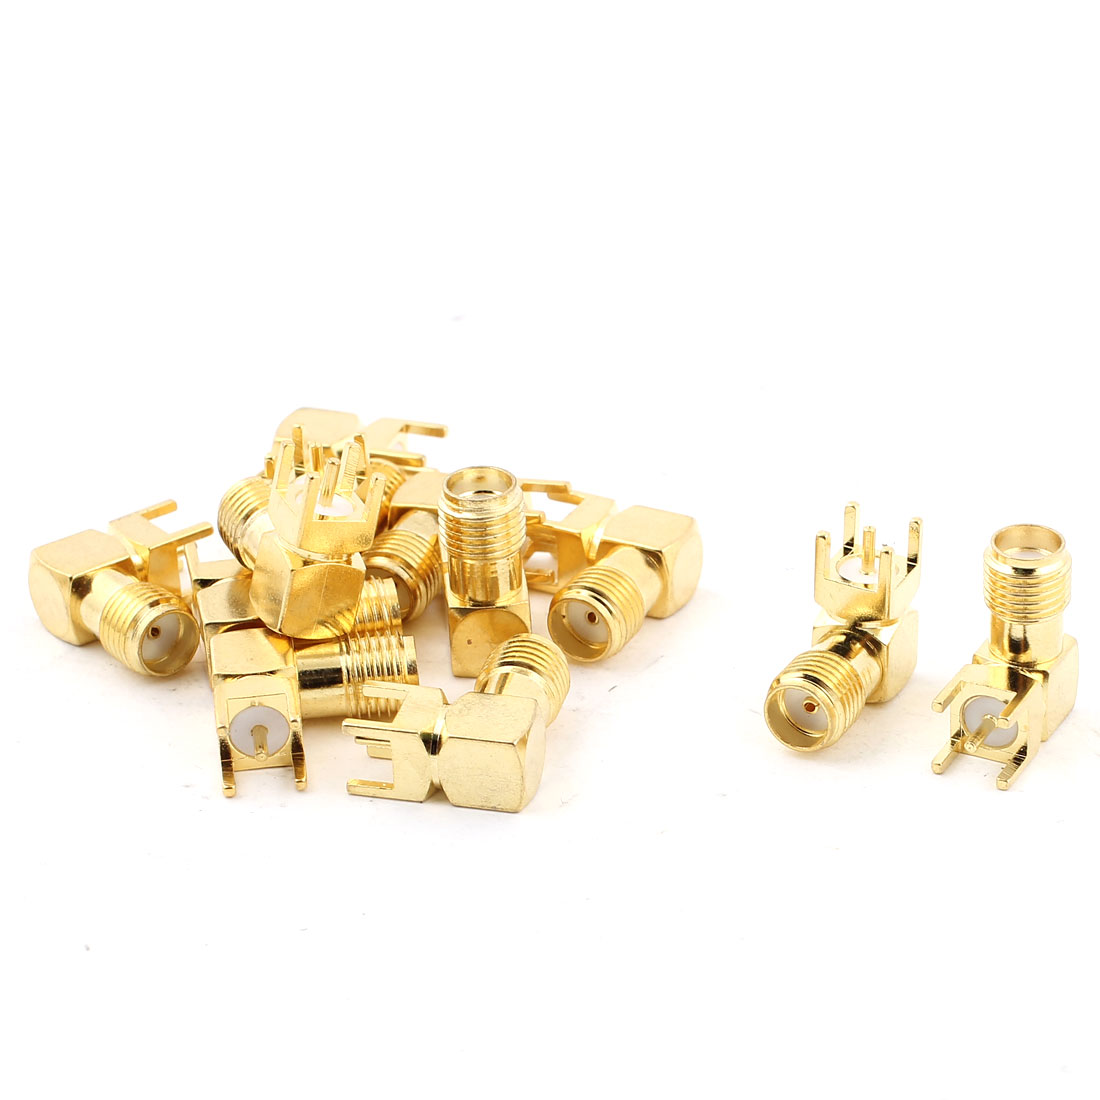 SMA Female Jack Right Angle Solder PCB Mount RF Connector Adapter Gold Tone 12pcs